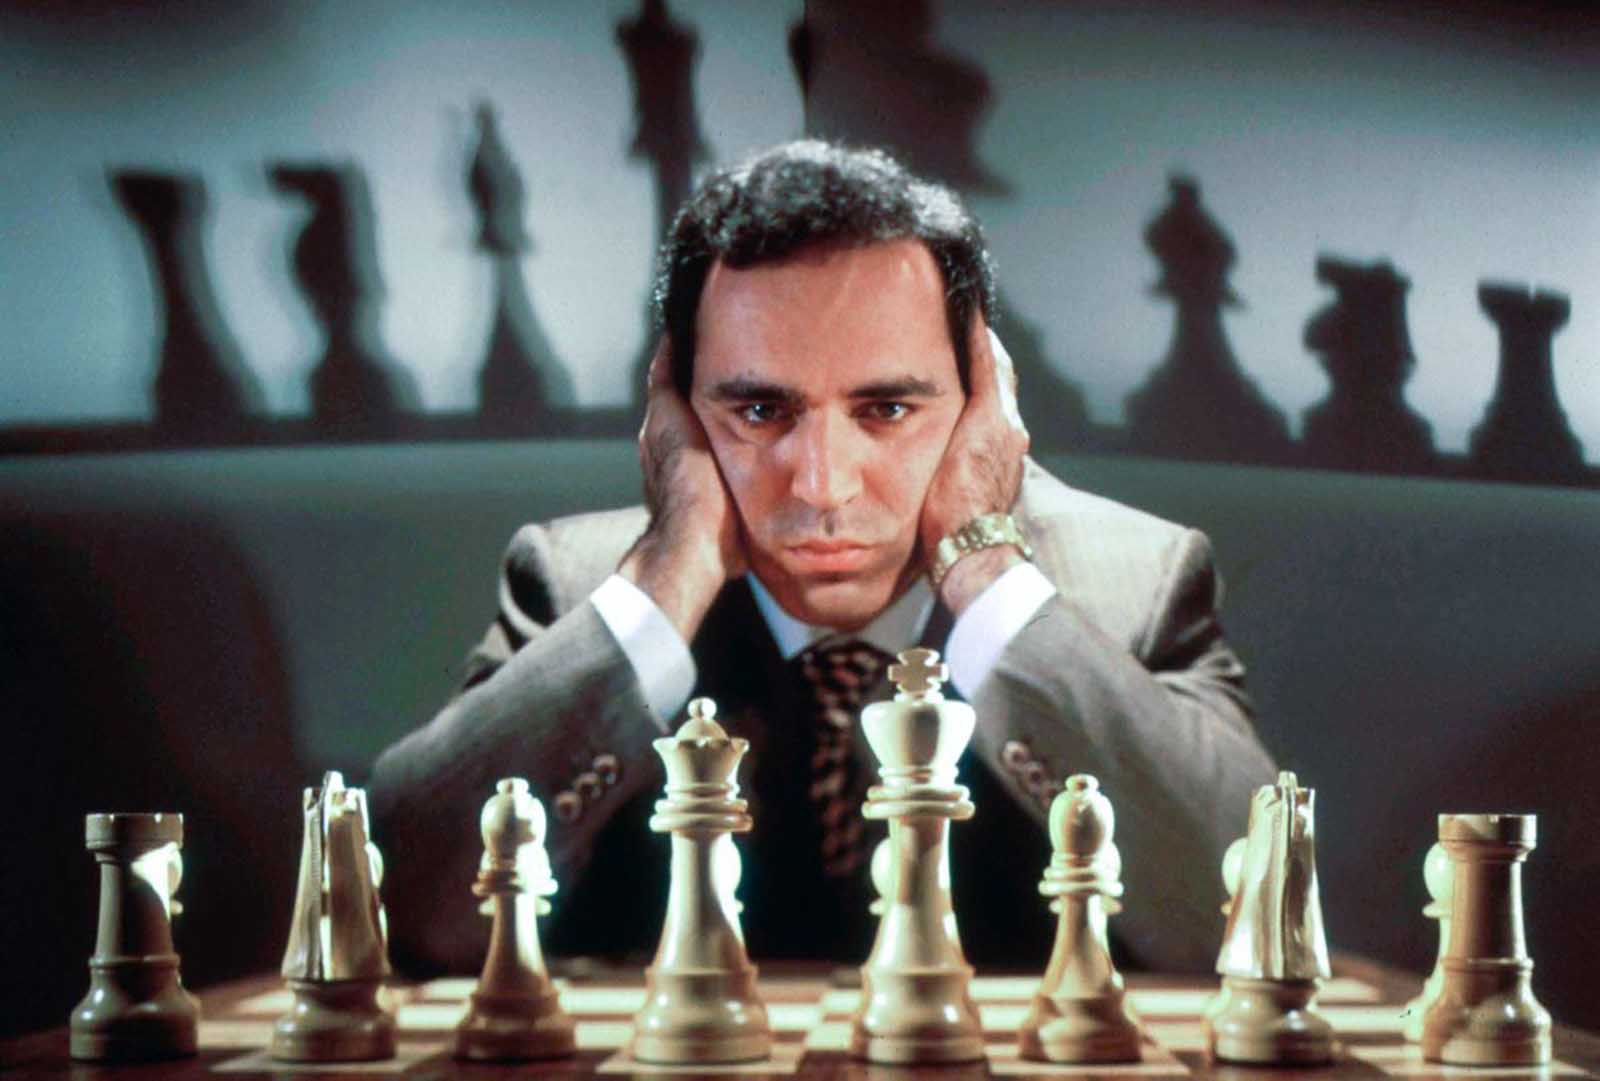 Kasparov poses for a photo while training for his rematch against Deep Blue.